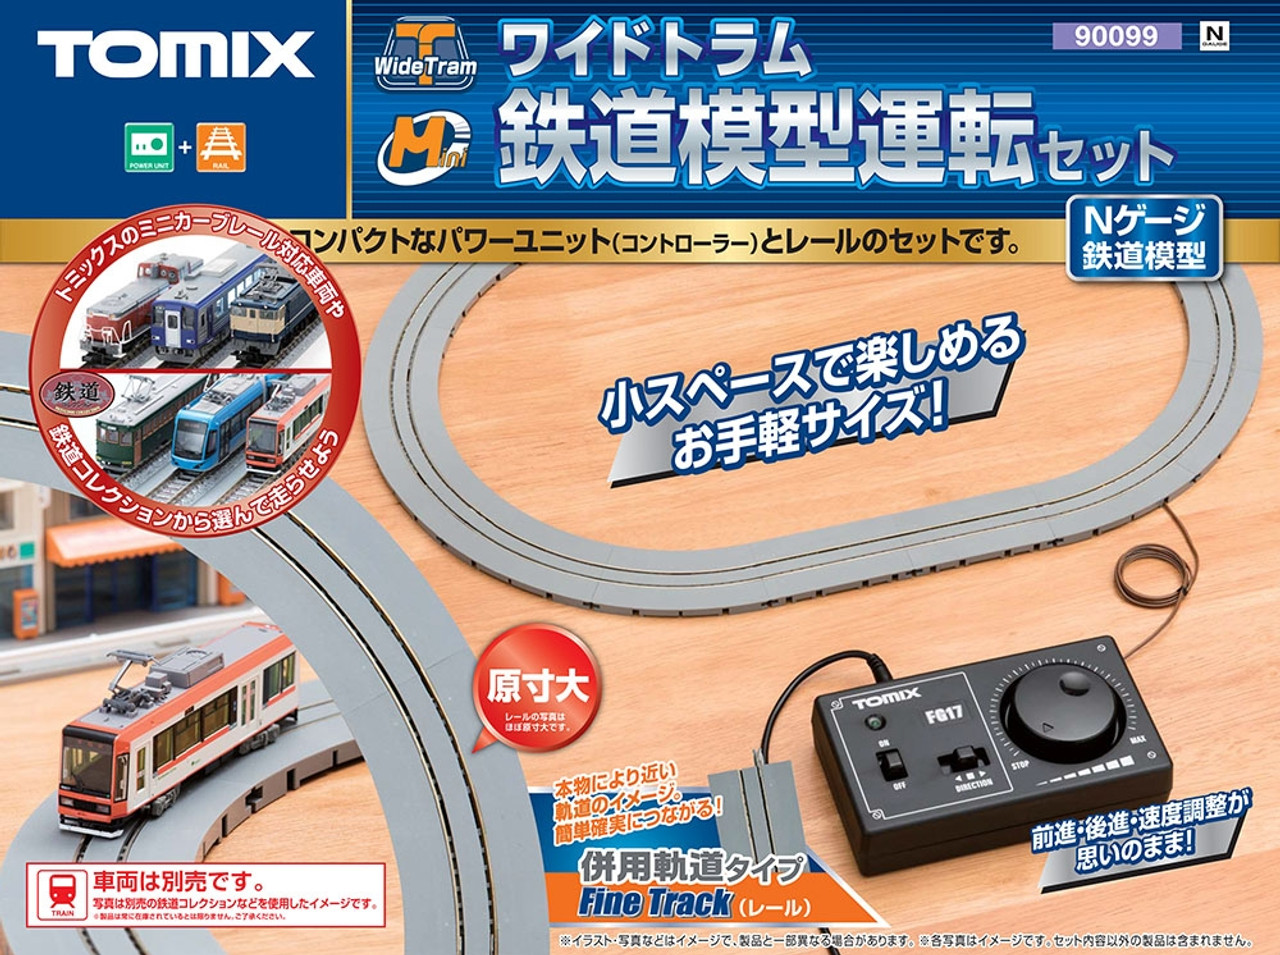 New Tomix 1793 Wide Tram 140 mm Straight Track S140-WT 4 pieces N scale Japan